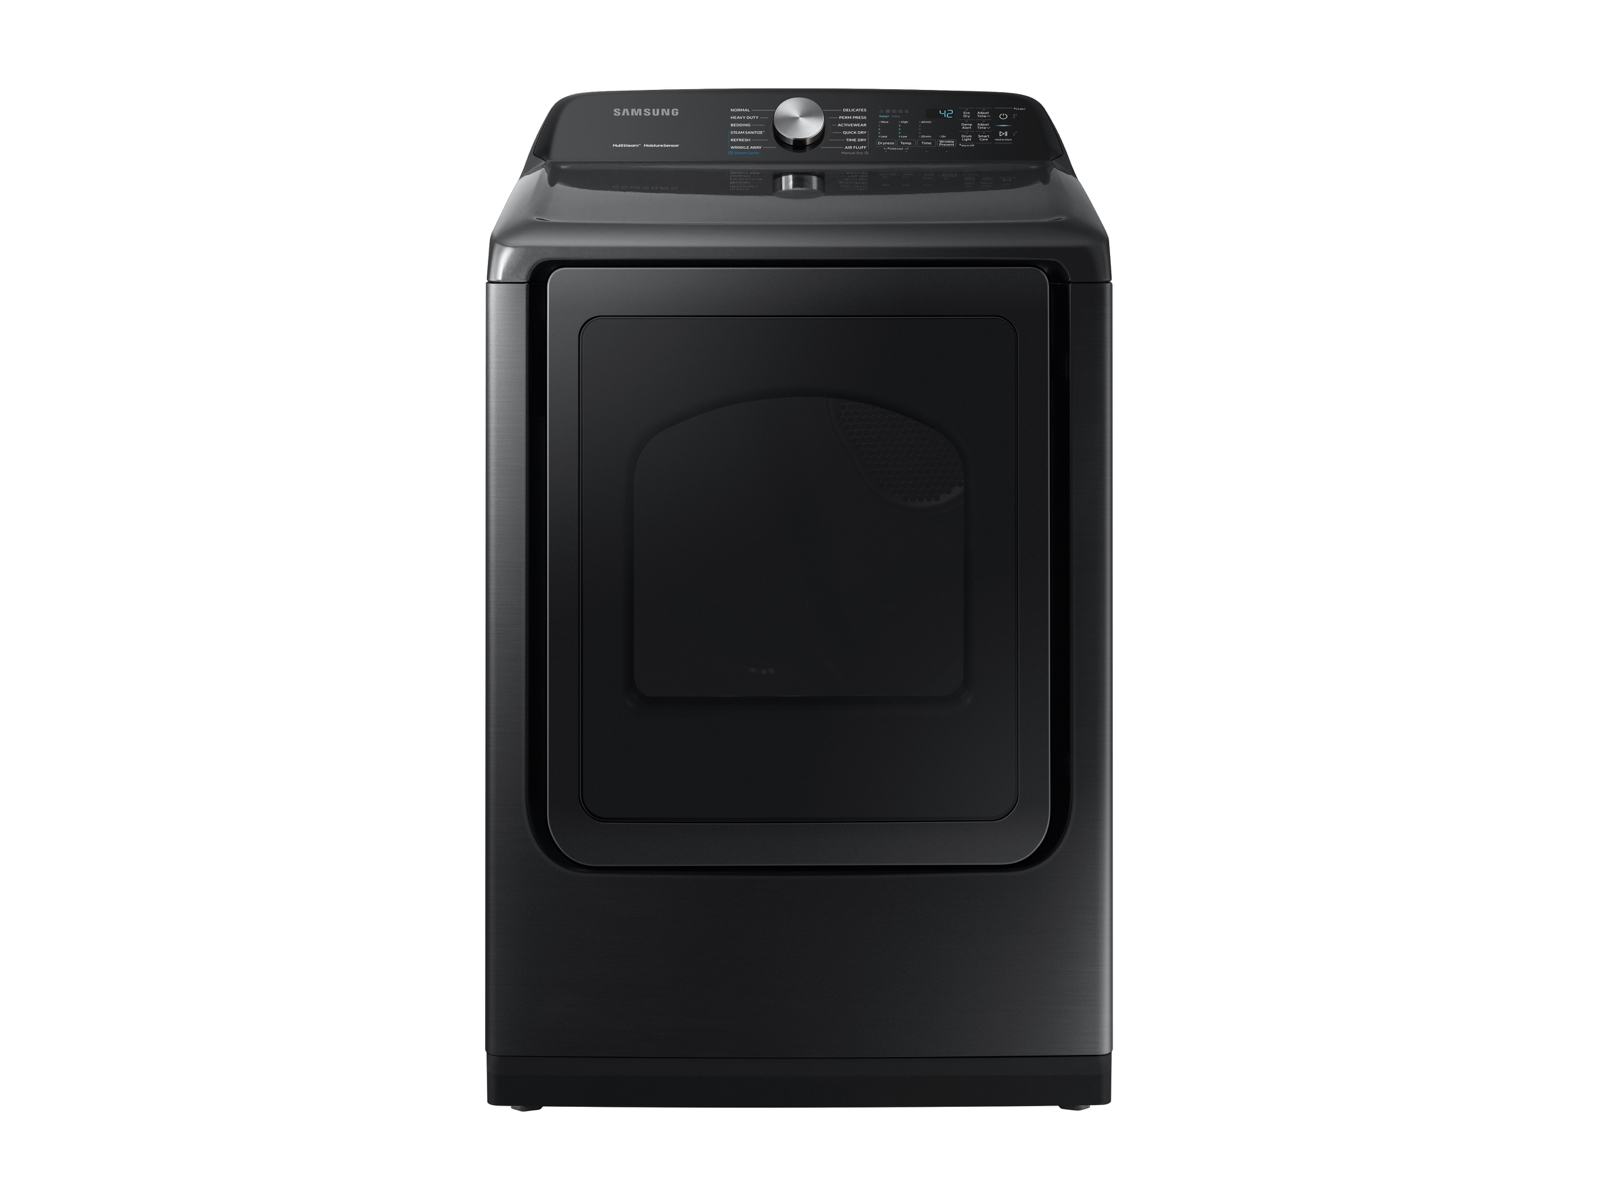 Samsung 7.4 cu. ft. Gas Dryer with Steam Sanitize+ in Black Stainless Steel, Fingerprint Resistant Black Stainless Steel